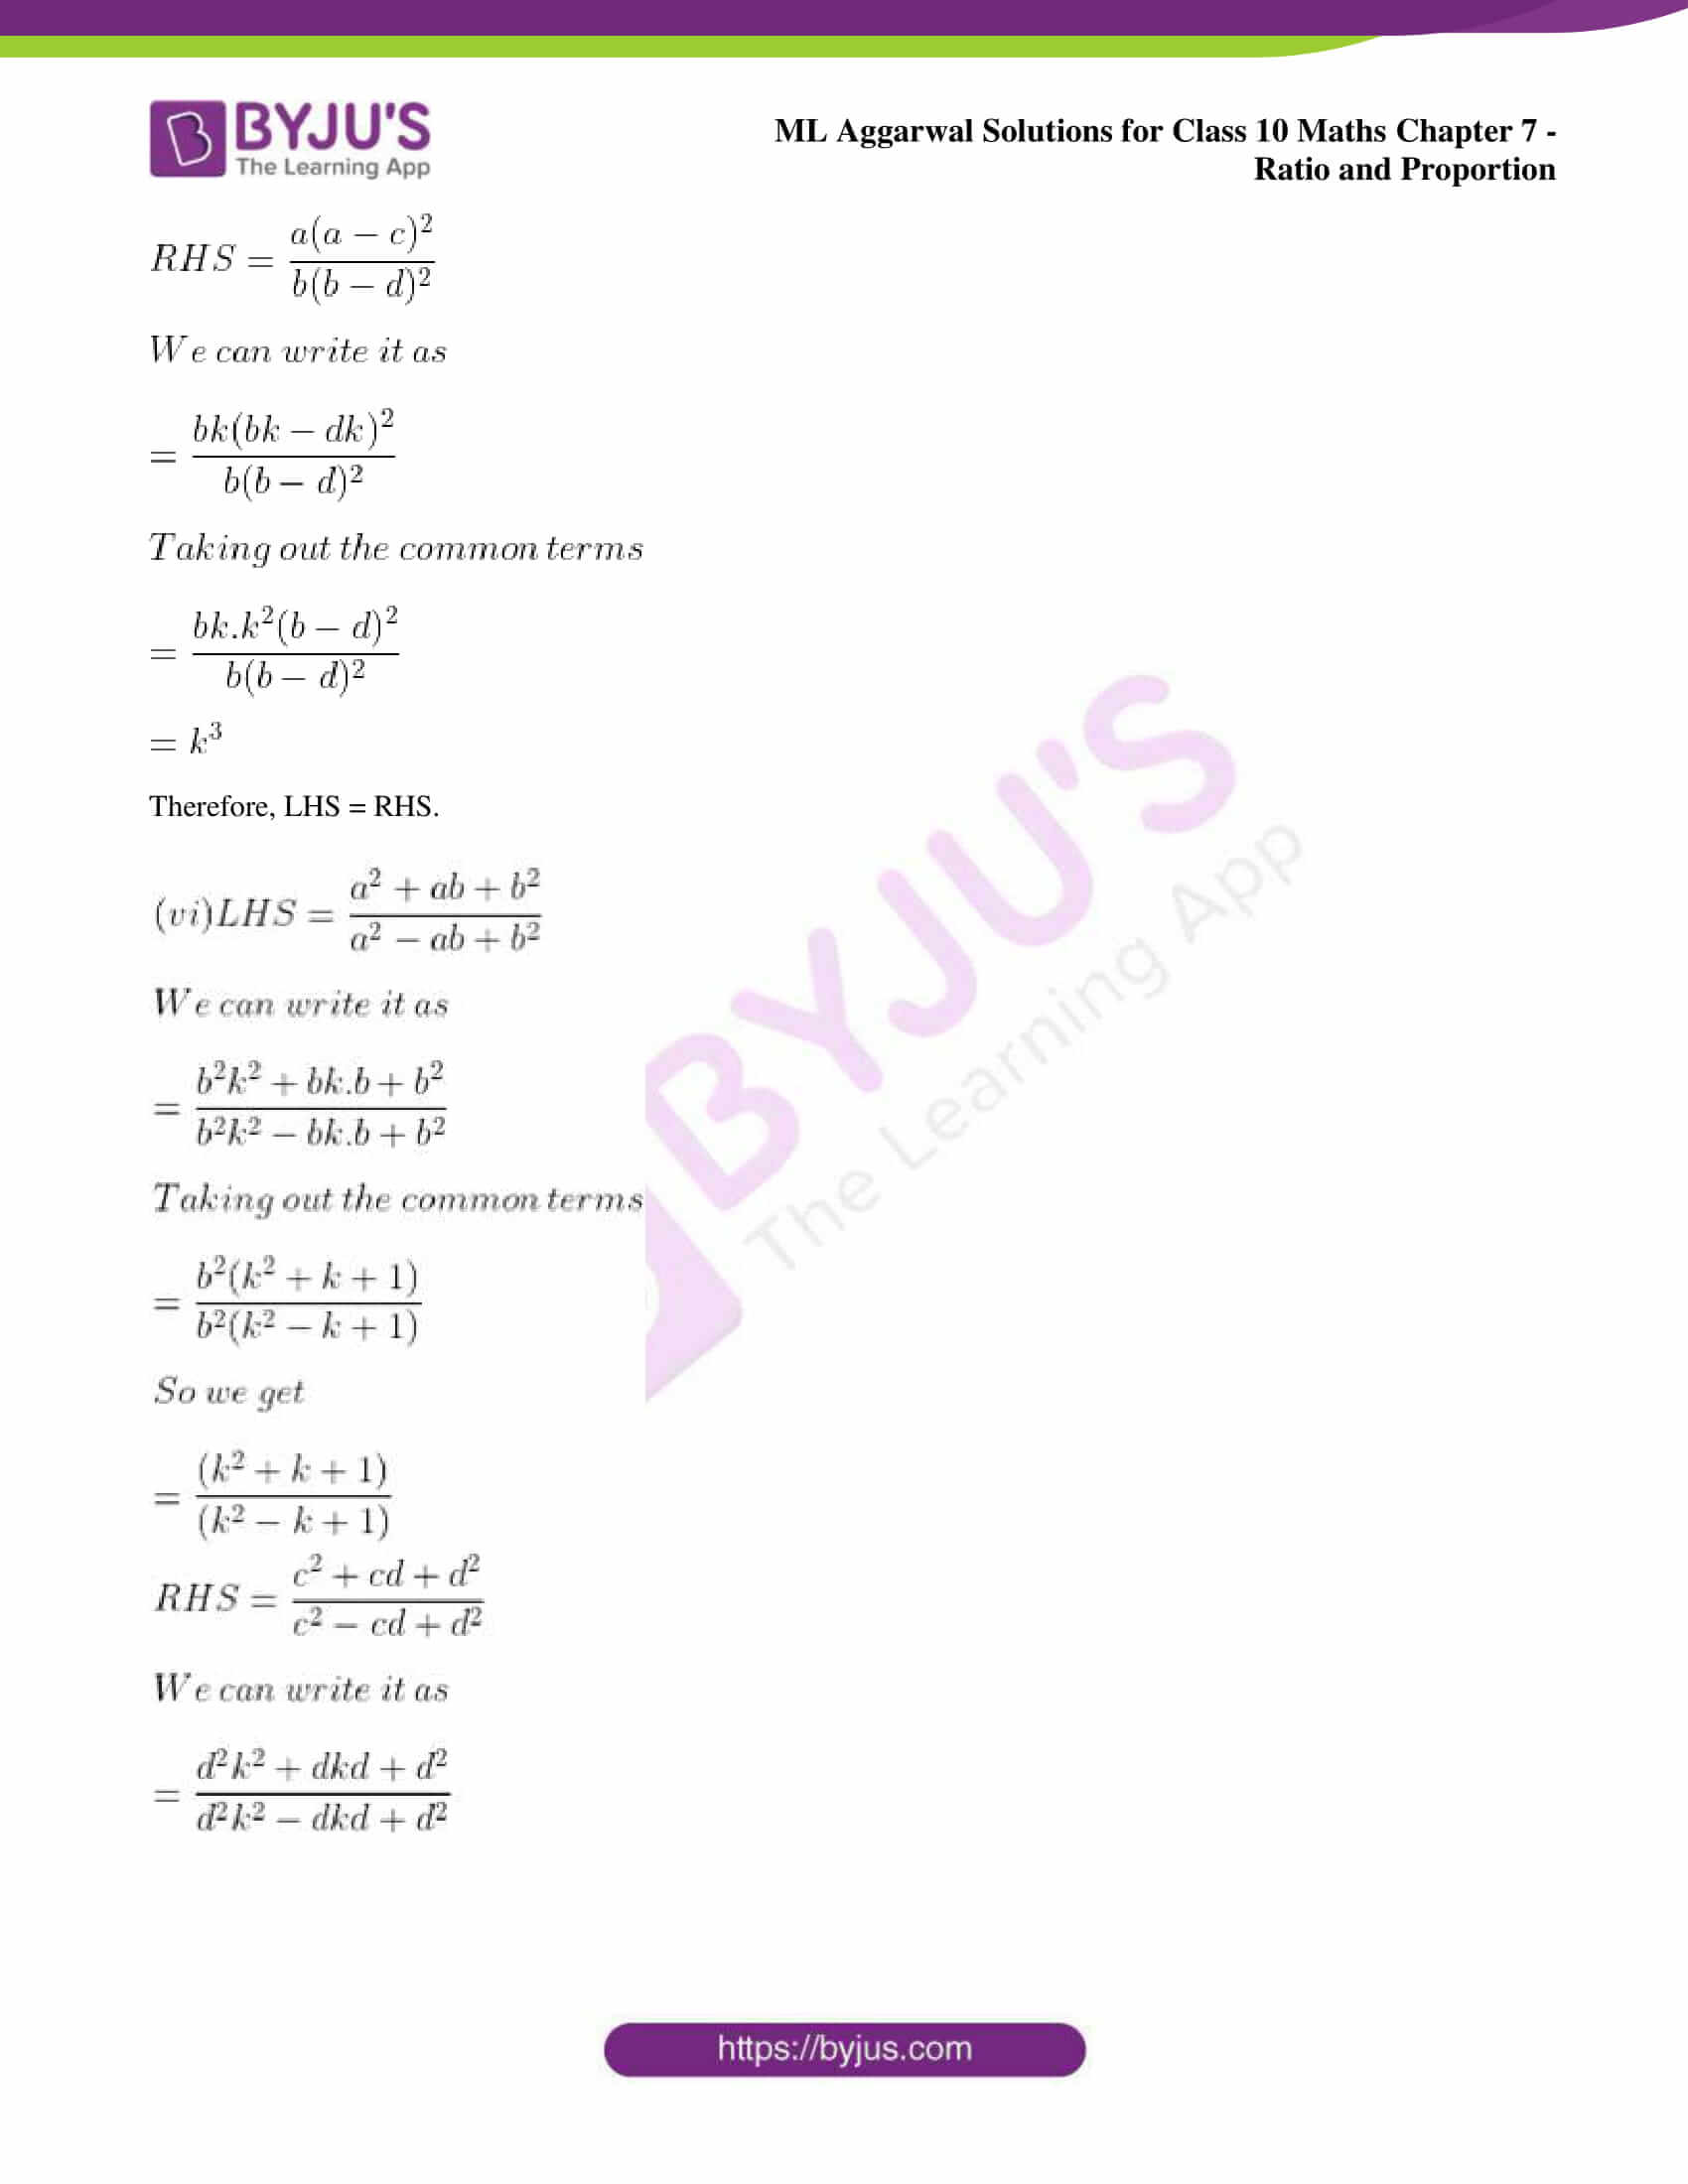 ml aggarwal solutions for class 10 maths chapter 7 32